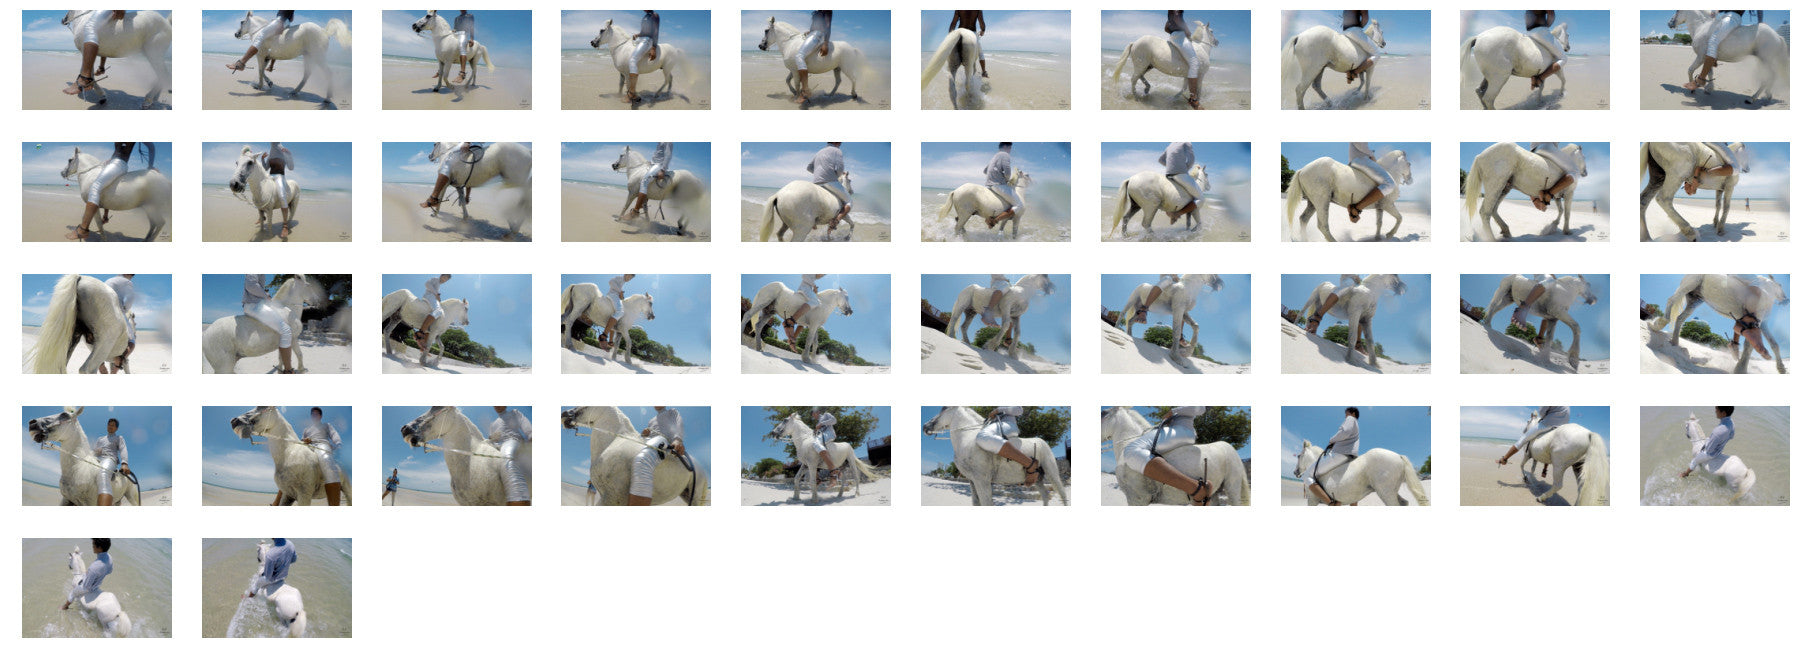 Leon in Silver Leggings and Pullover Riding Bareback on White Pony, Part 1 - Riding.Vision